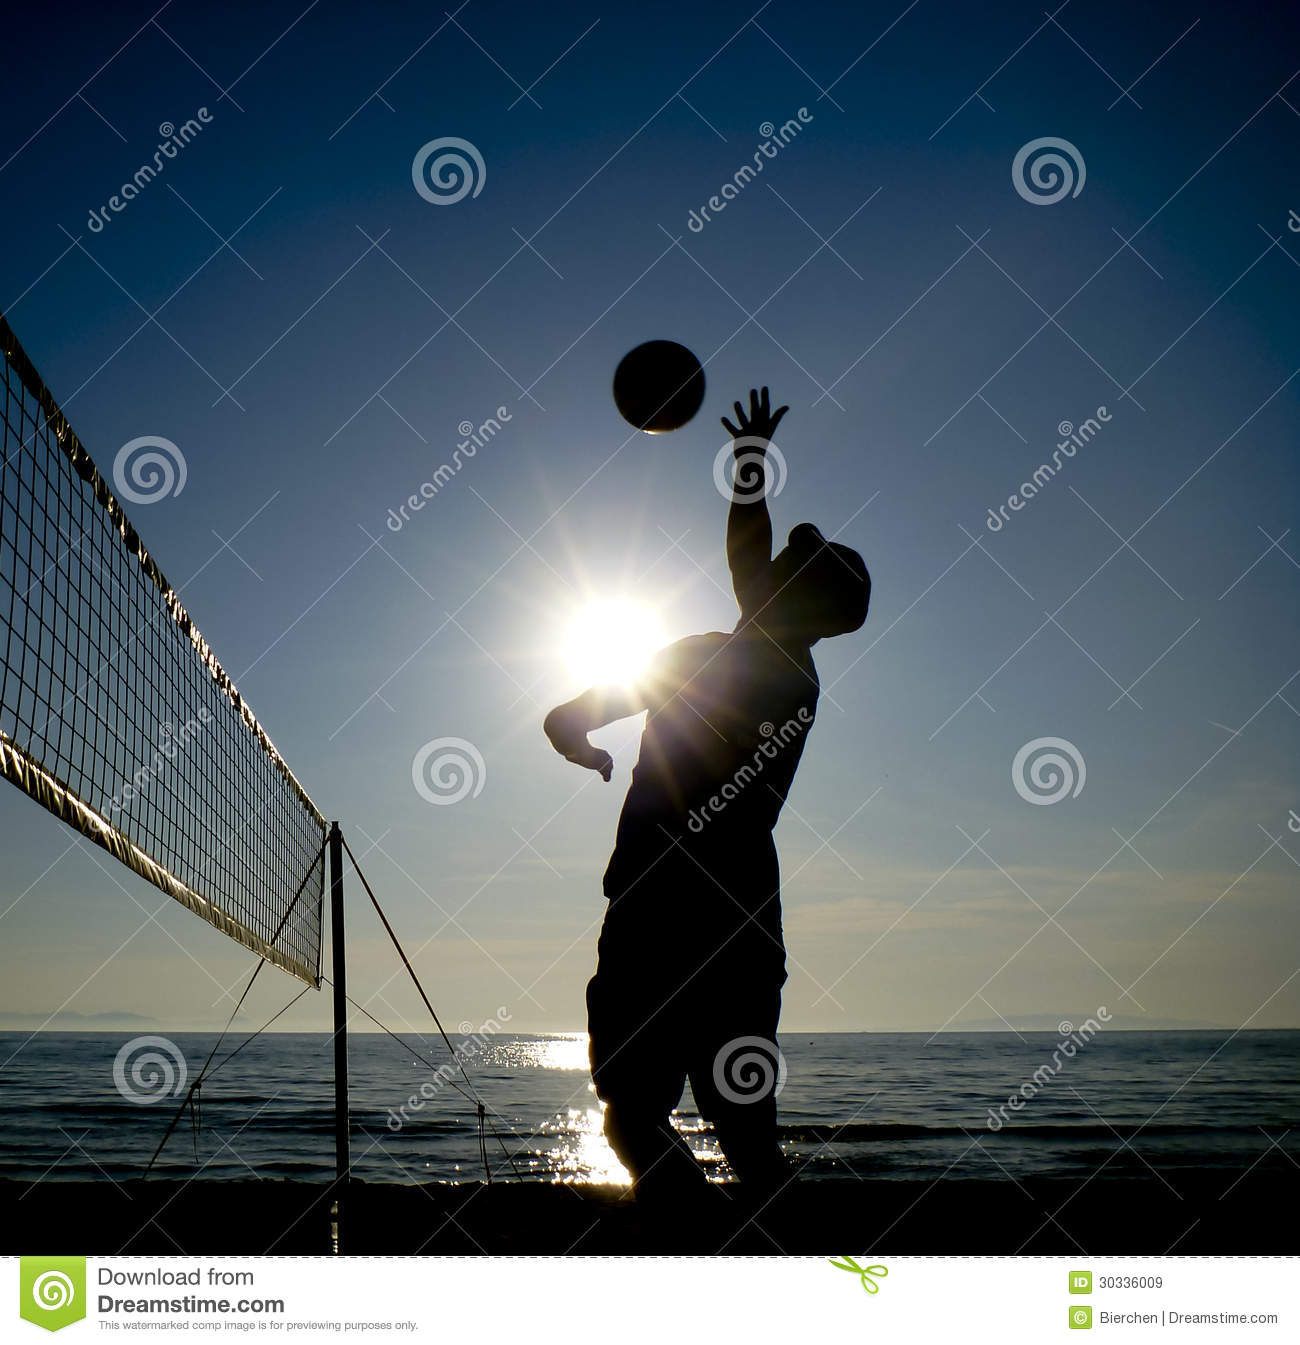 Nude Volleyball Players Stock Photos, Pictures & Royalty